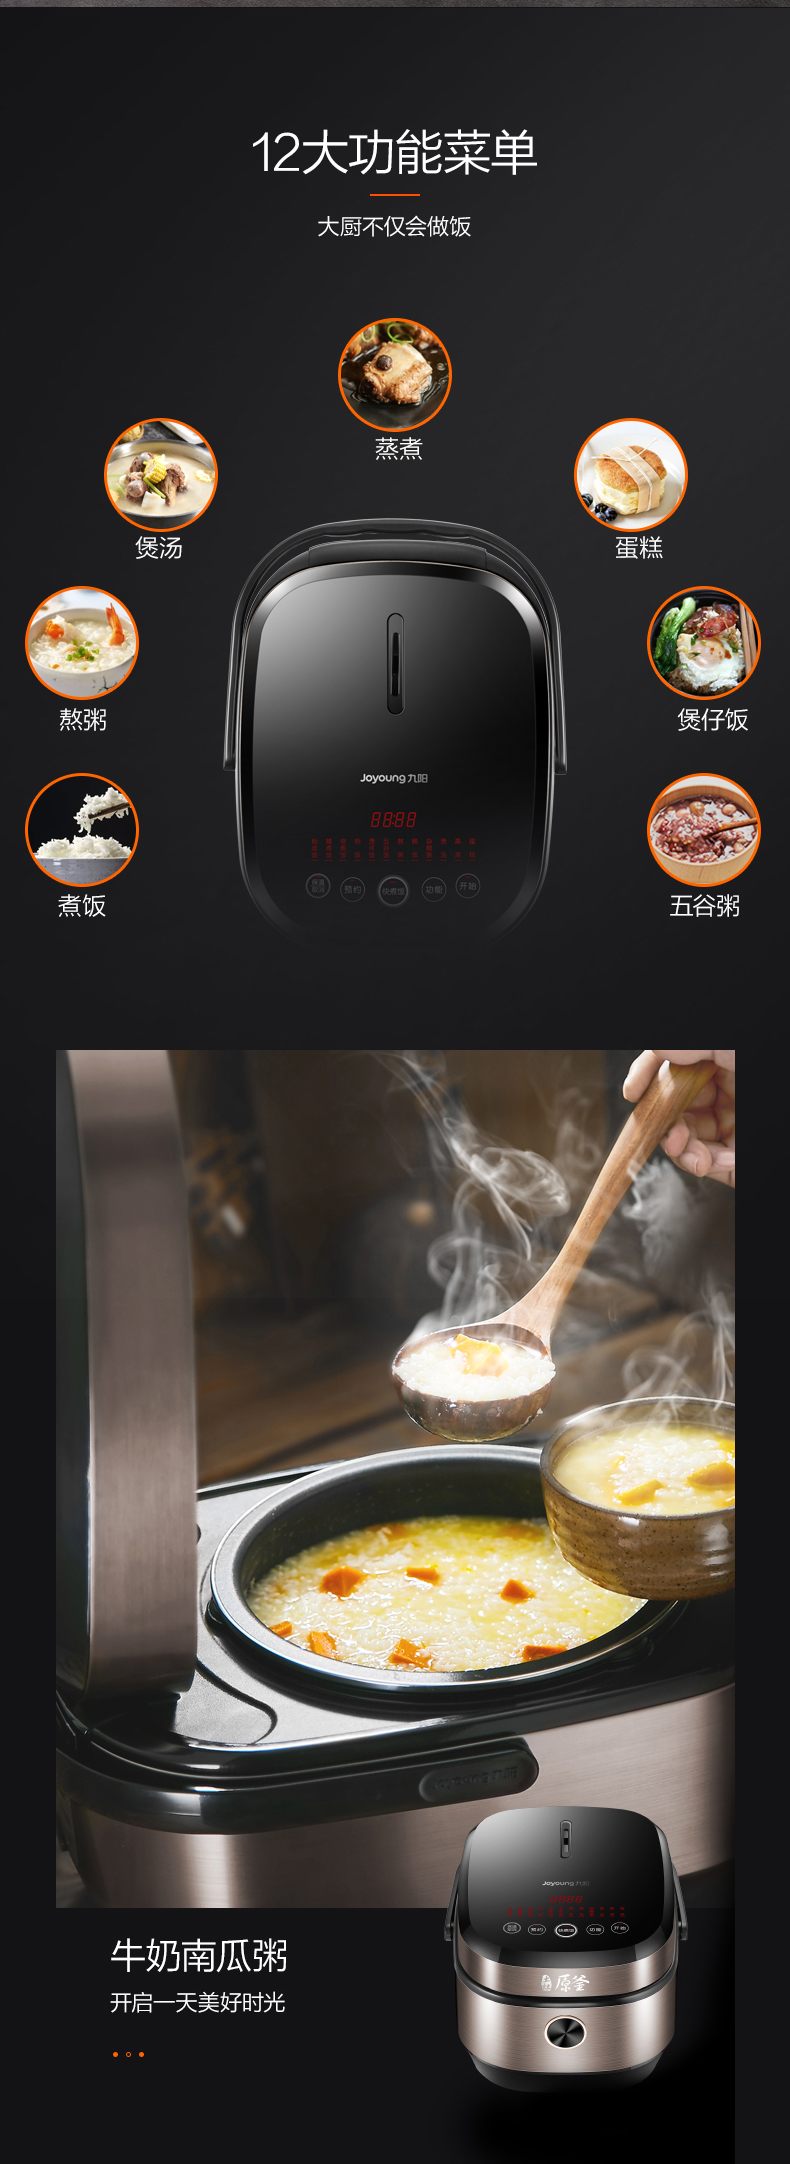 Rice Cooker 5L Home Smart 1 Large Capacity 3 Steamed Rice Cooking Rice 6 Authentic Rice Cooker 50FY808 9